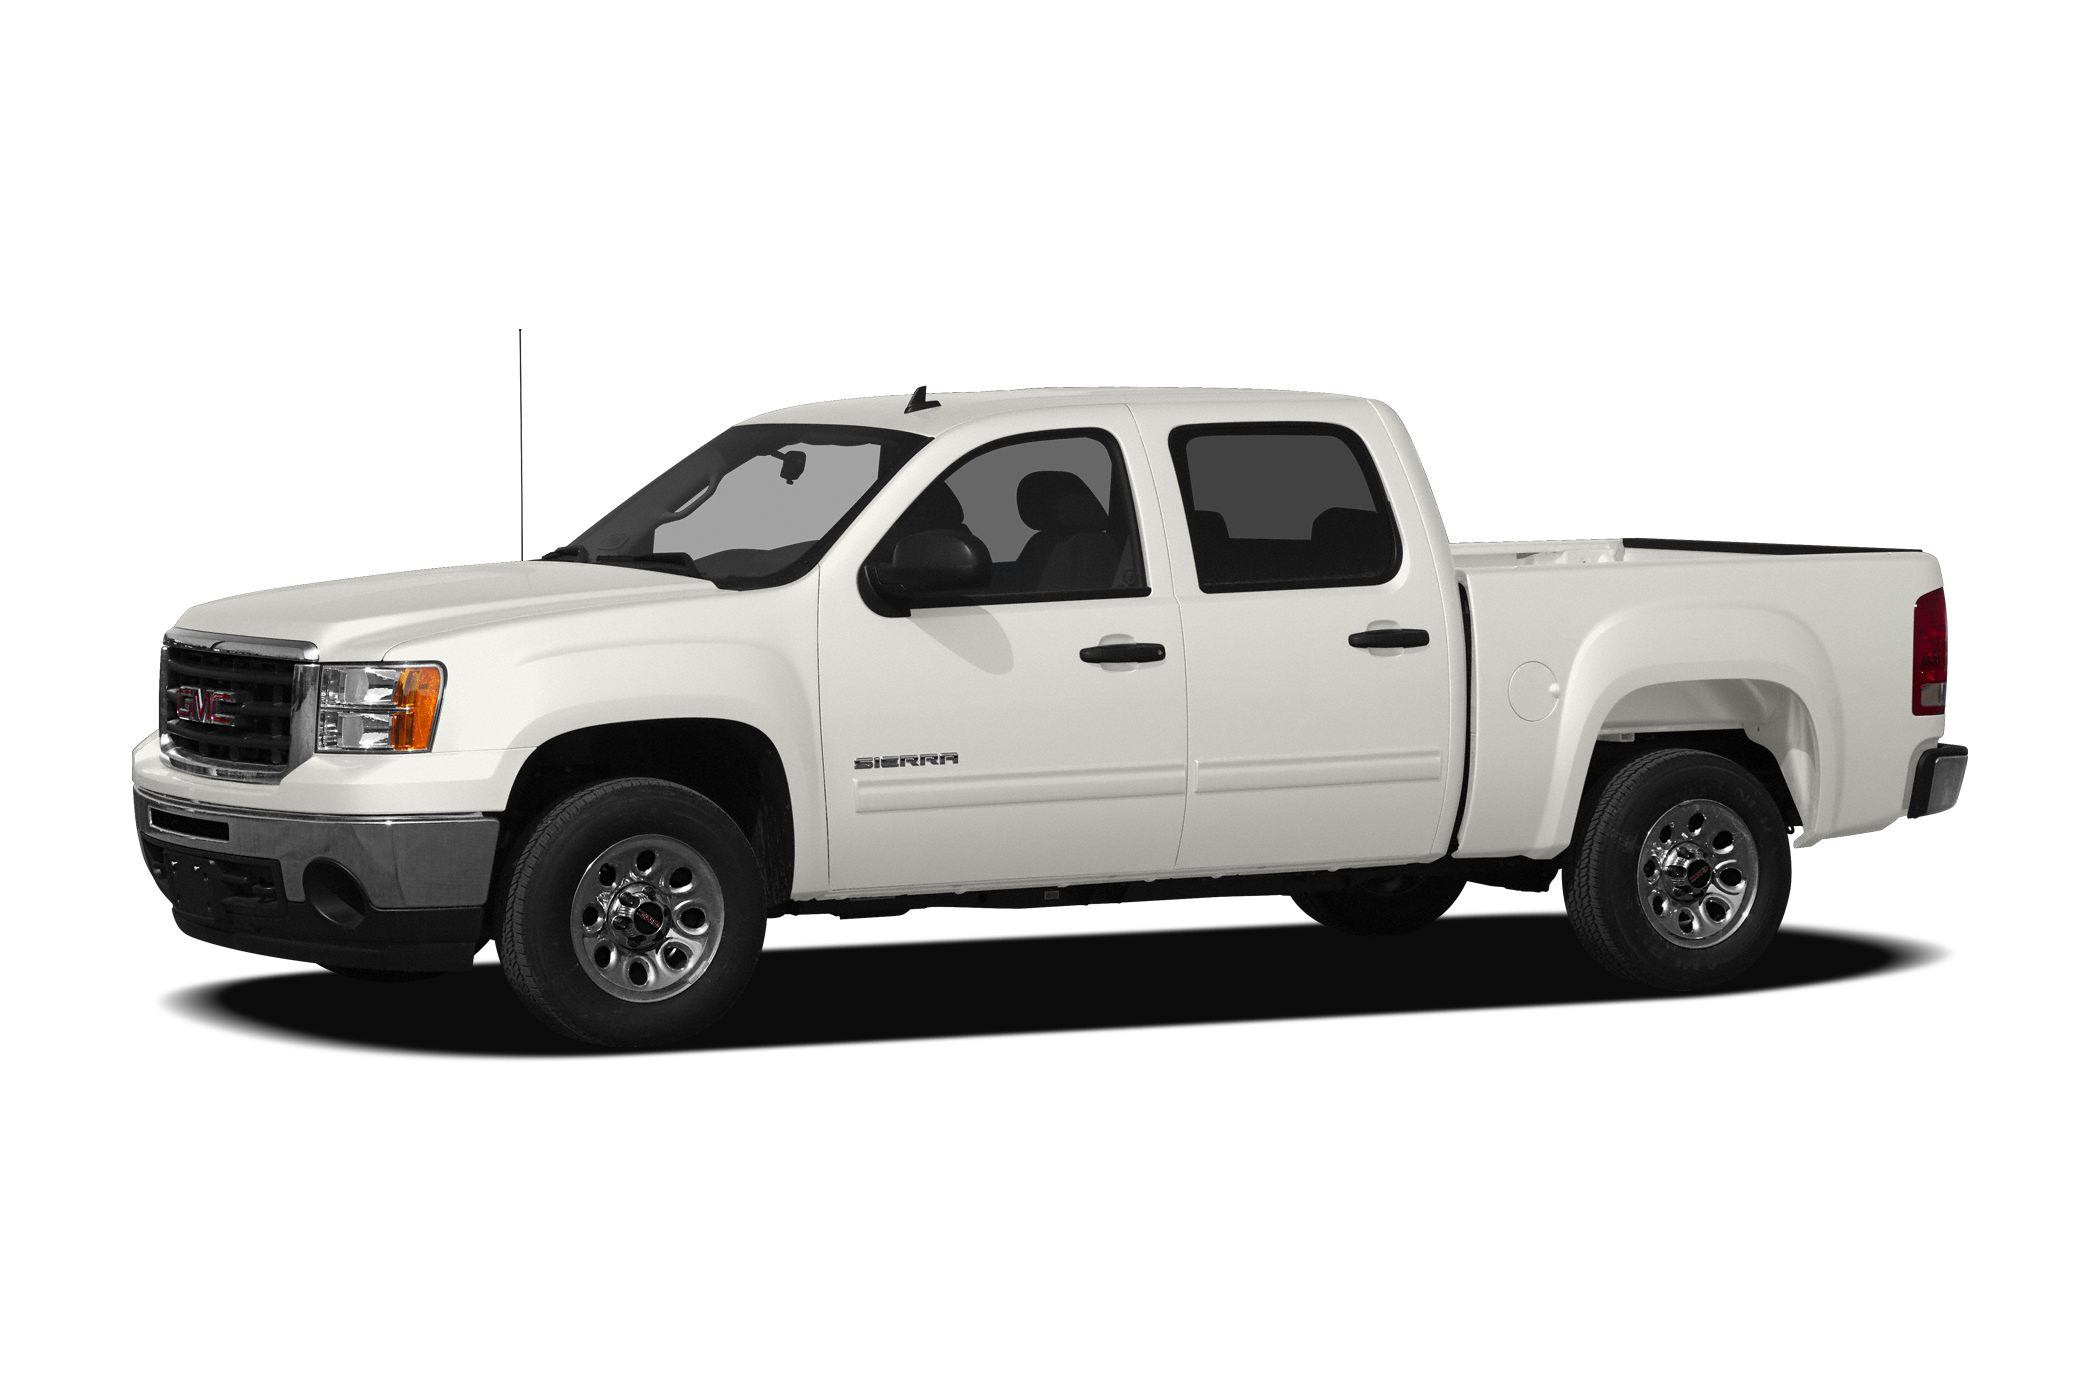 2010 GMC Sierra 1500 Denali Crew Cab Pickup for sale in Bloomsburg for $35,988 with 34,322 miles